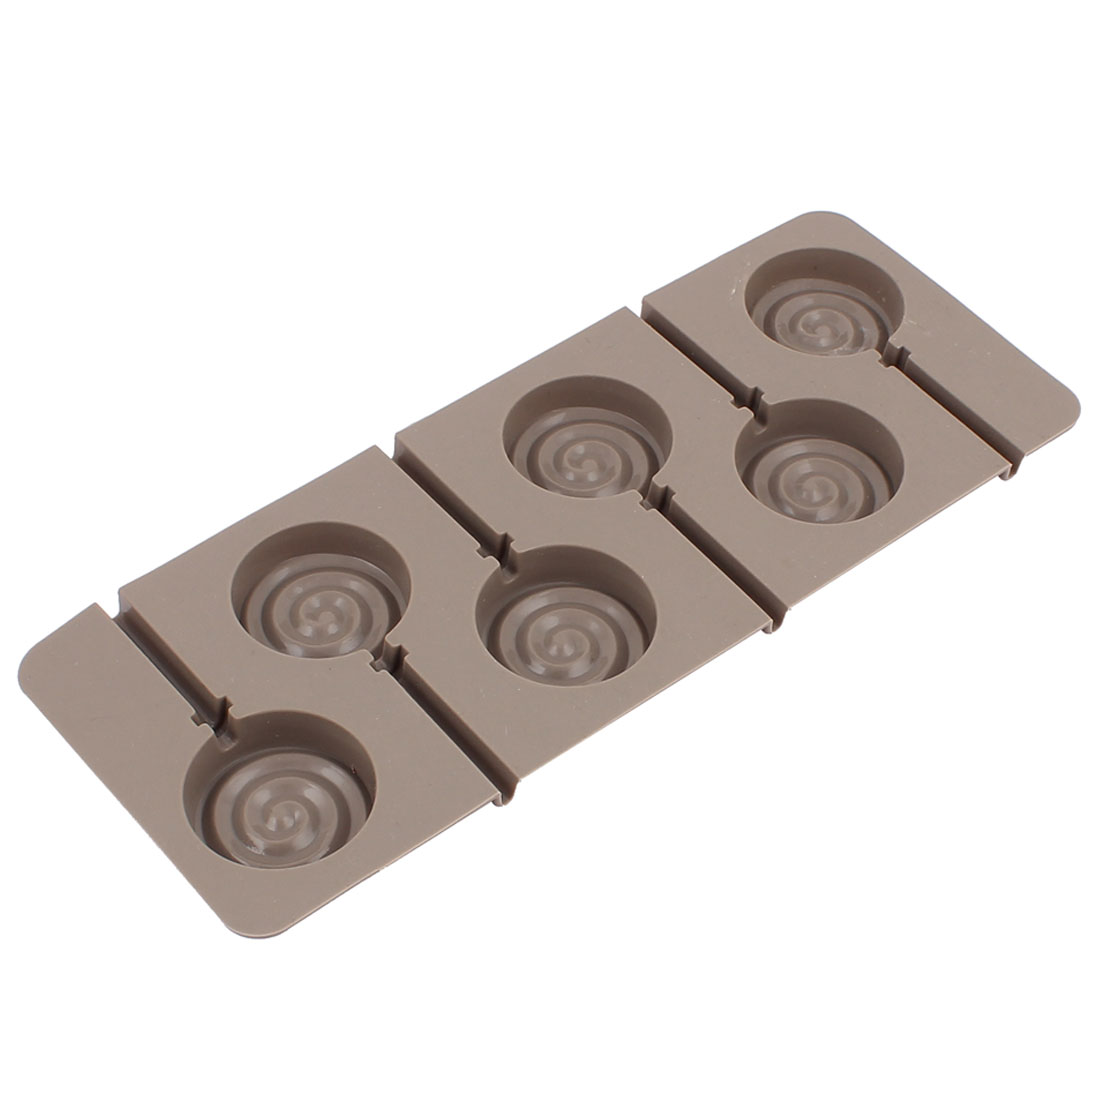 Silicone DIY Candy Chocolate Lollipop Craft Mold Gray